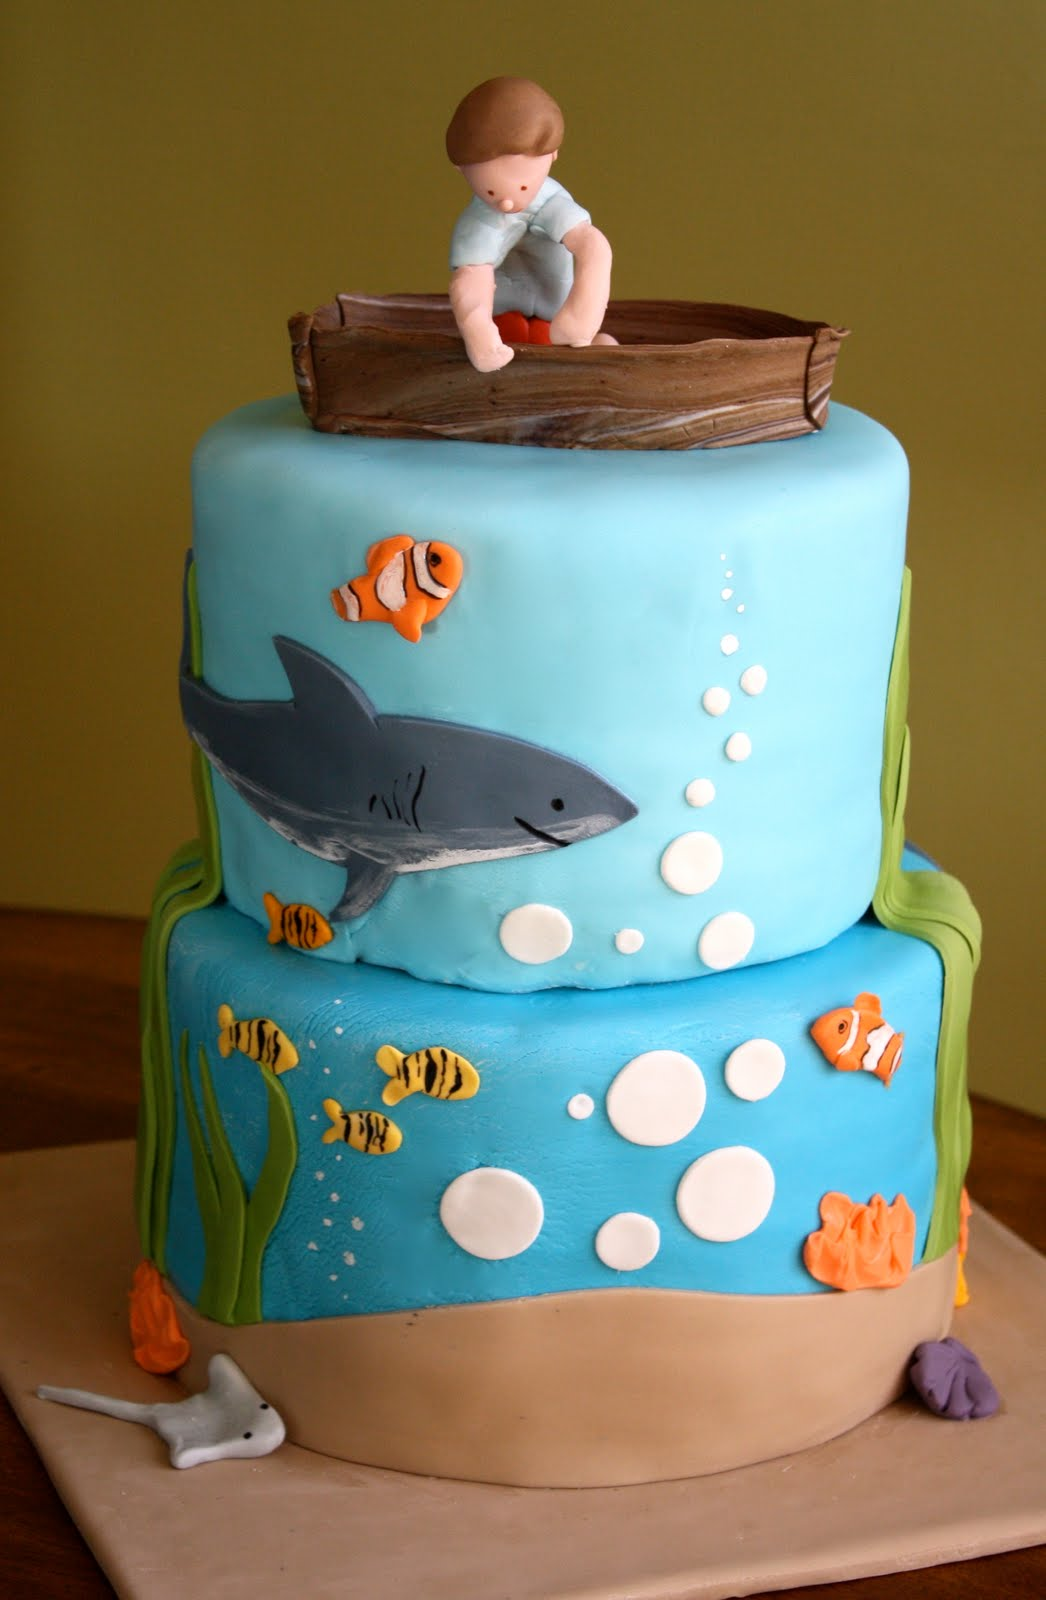 Cake Images Birthday Boy : Baker s Cakes: Under the Sea Birthday Cake!